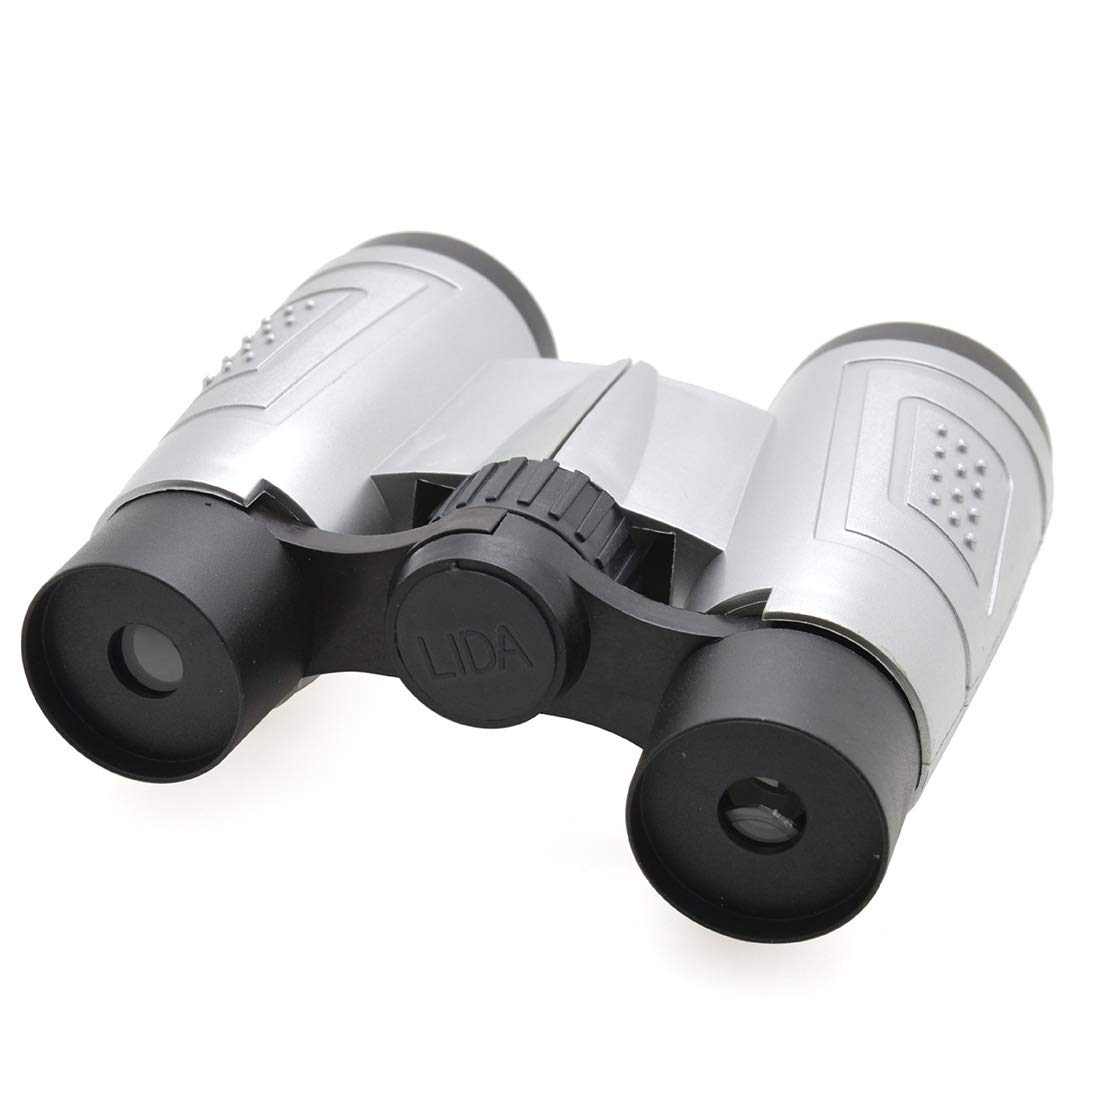 FELICIGG Binoculars Children's Lens Fun Optical Toy Portable Handheld Telescope for Outdoor Use (Color : Picture color)